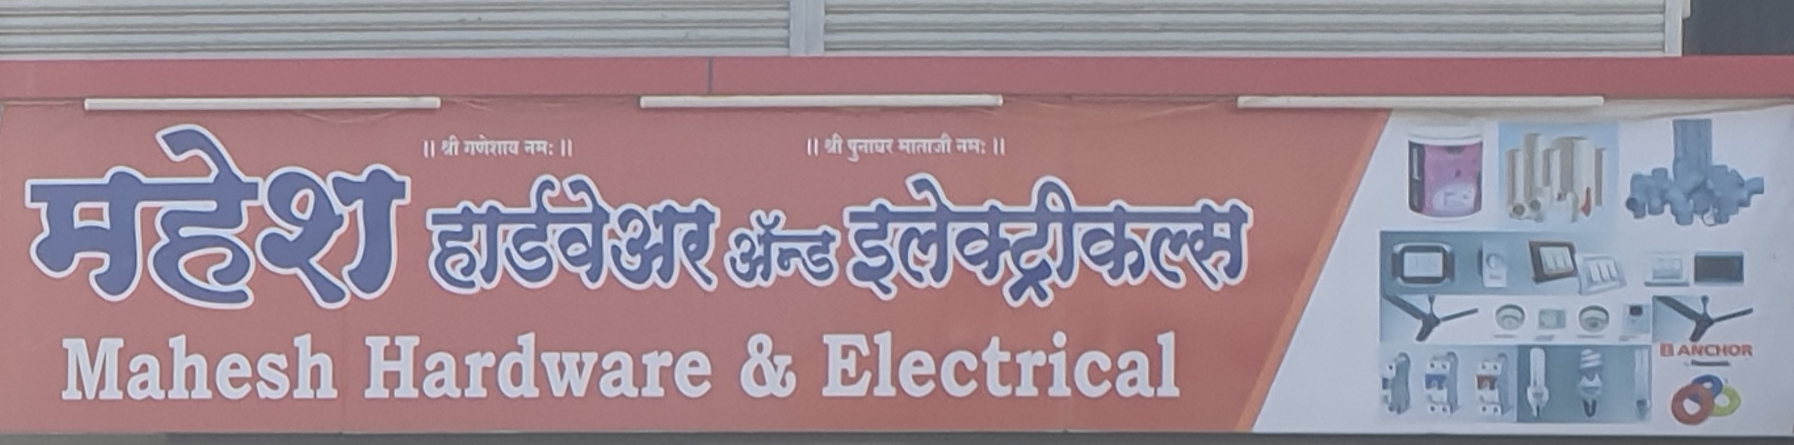 Mahesh hardware and electrical Hardware  Ply And Glass in Wagholi Pune